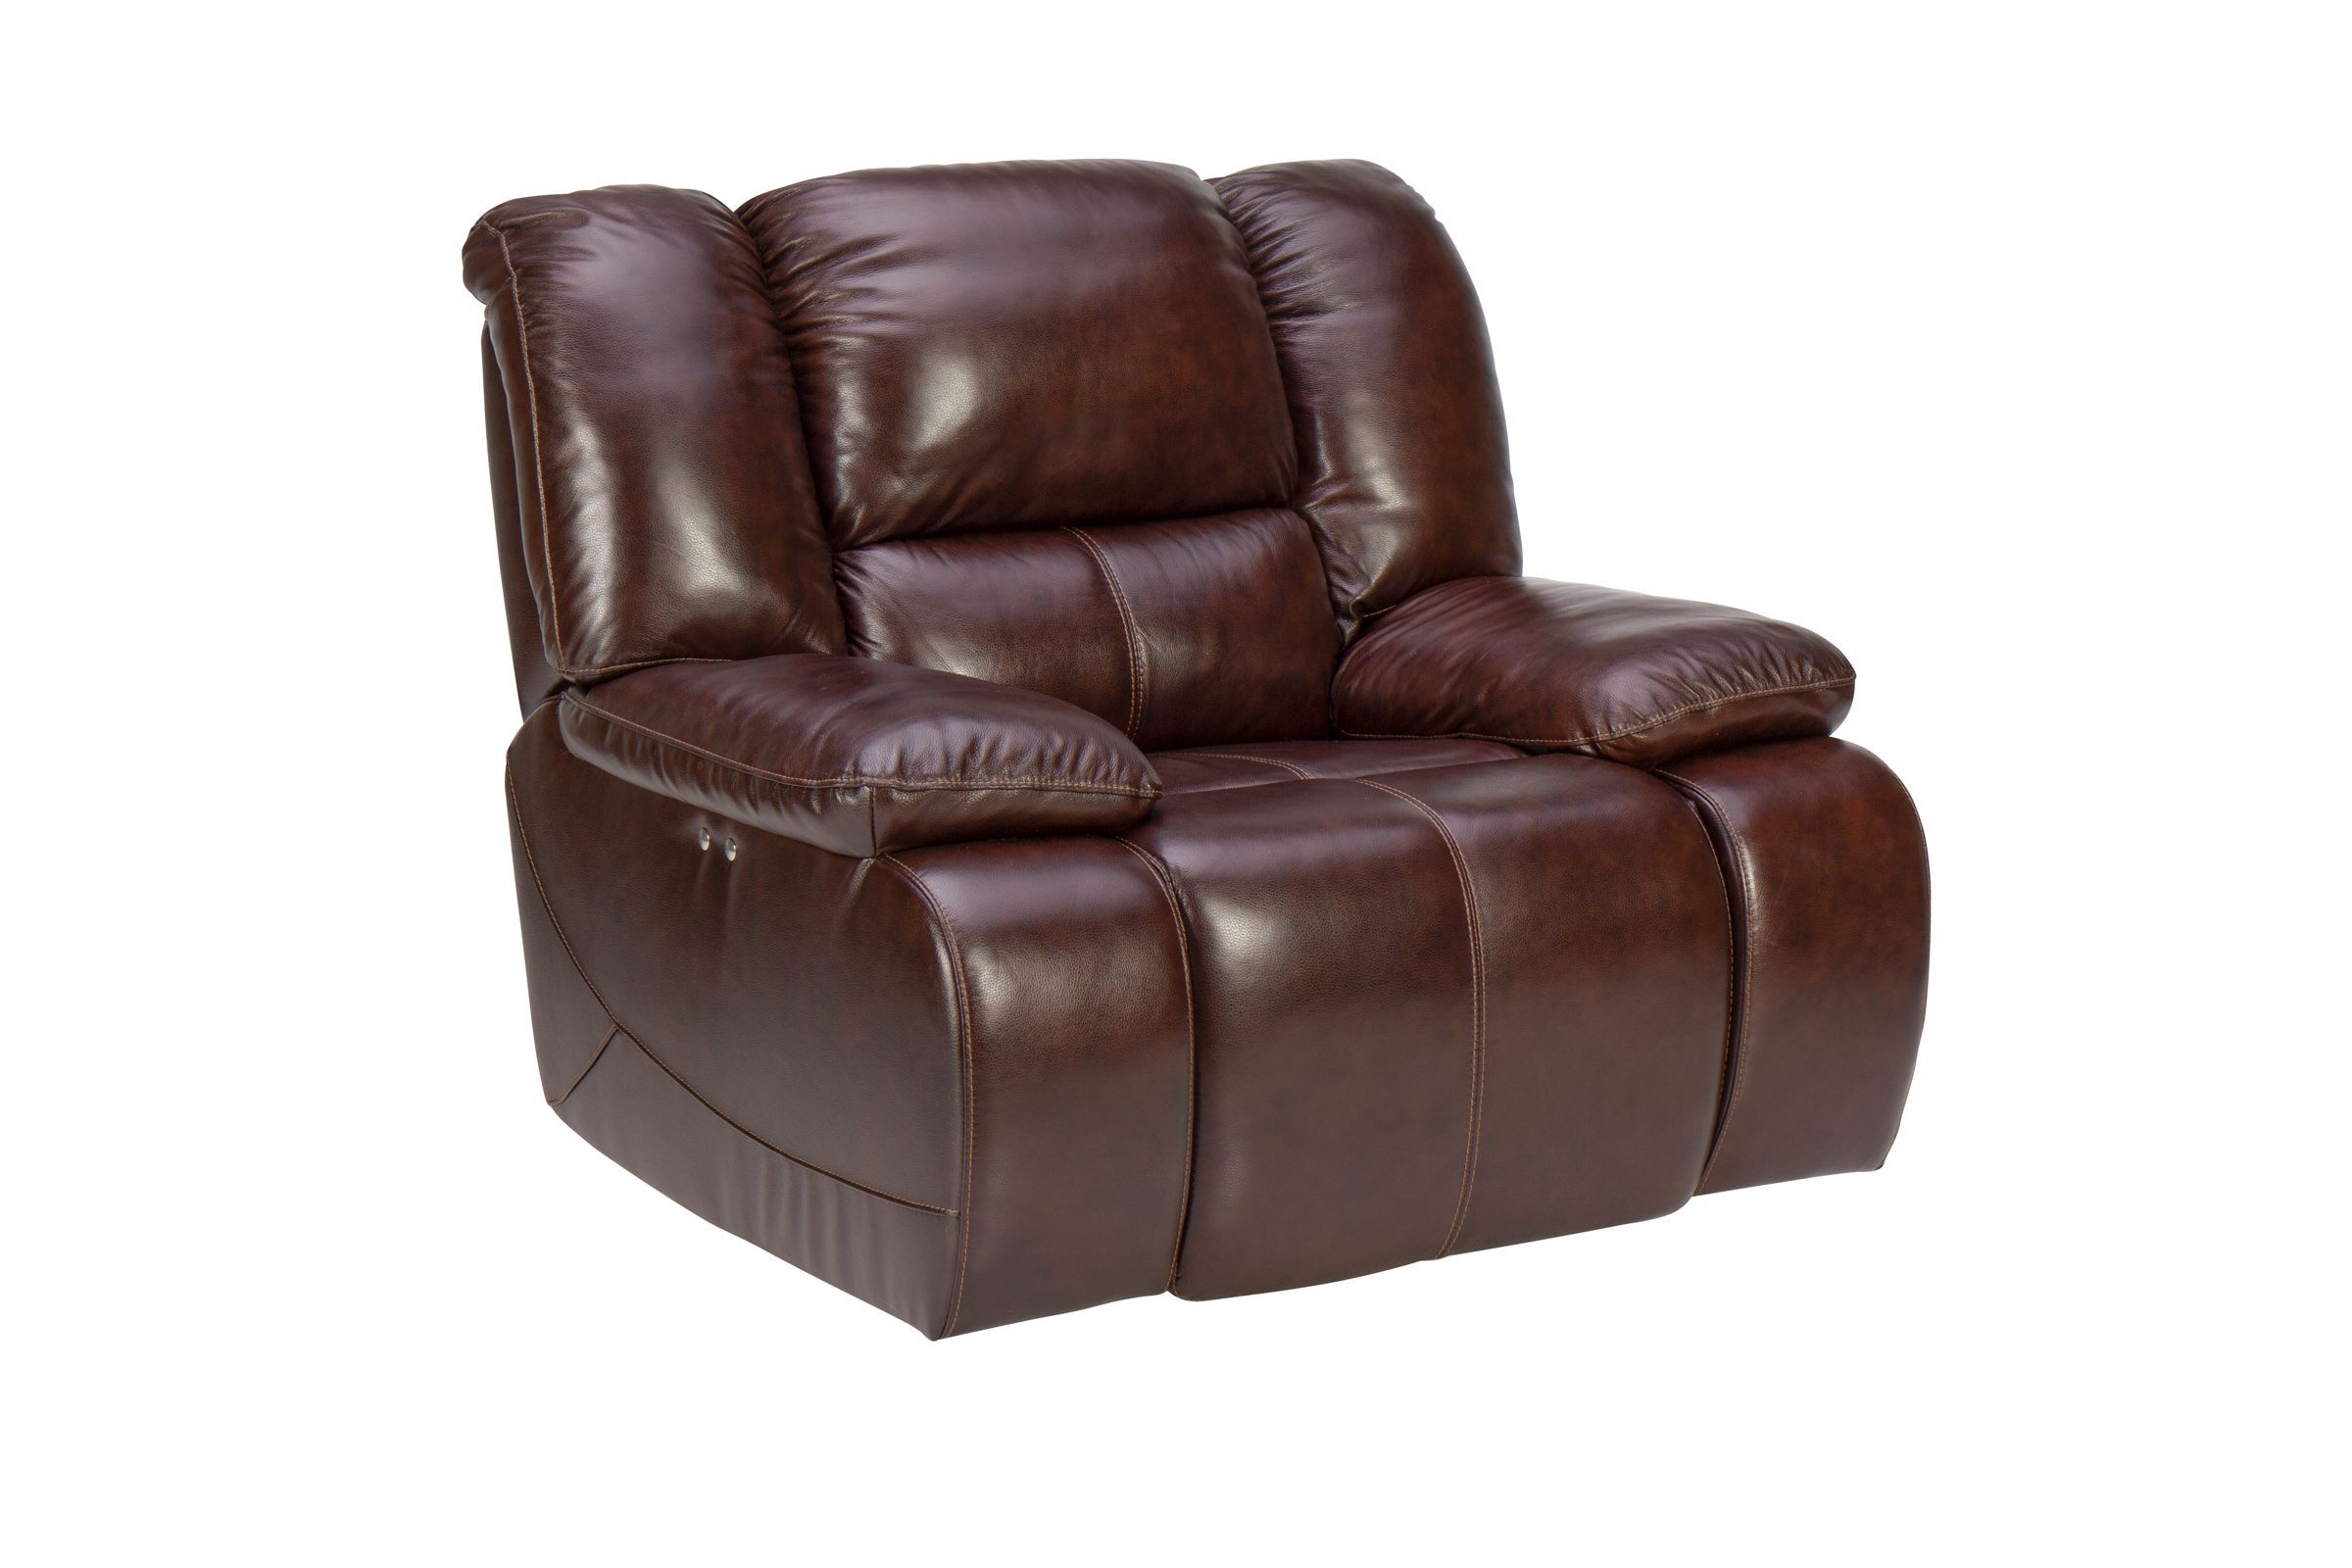 Terrific Amarillo Power Glider Leather Recliner Products In 2019 Alphanode Cool Chair Designs And Ideas Alphanodeonline